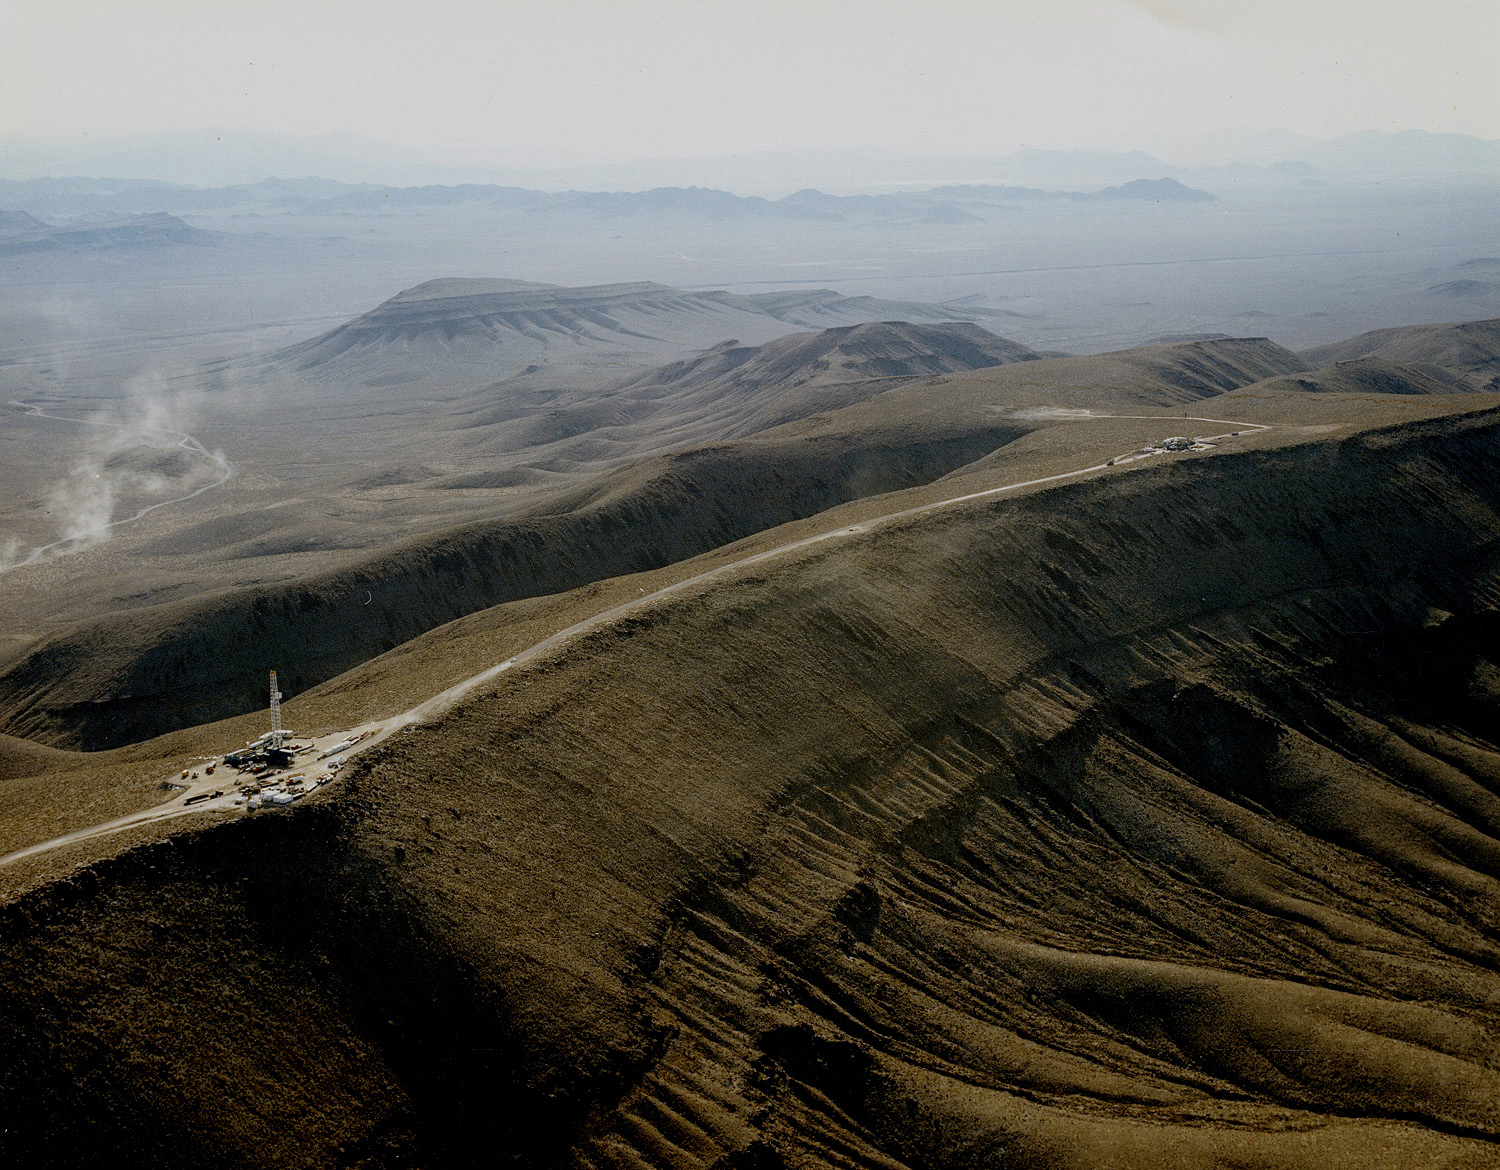 If not Yucca Mountain, then what?